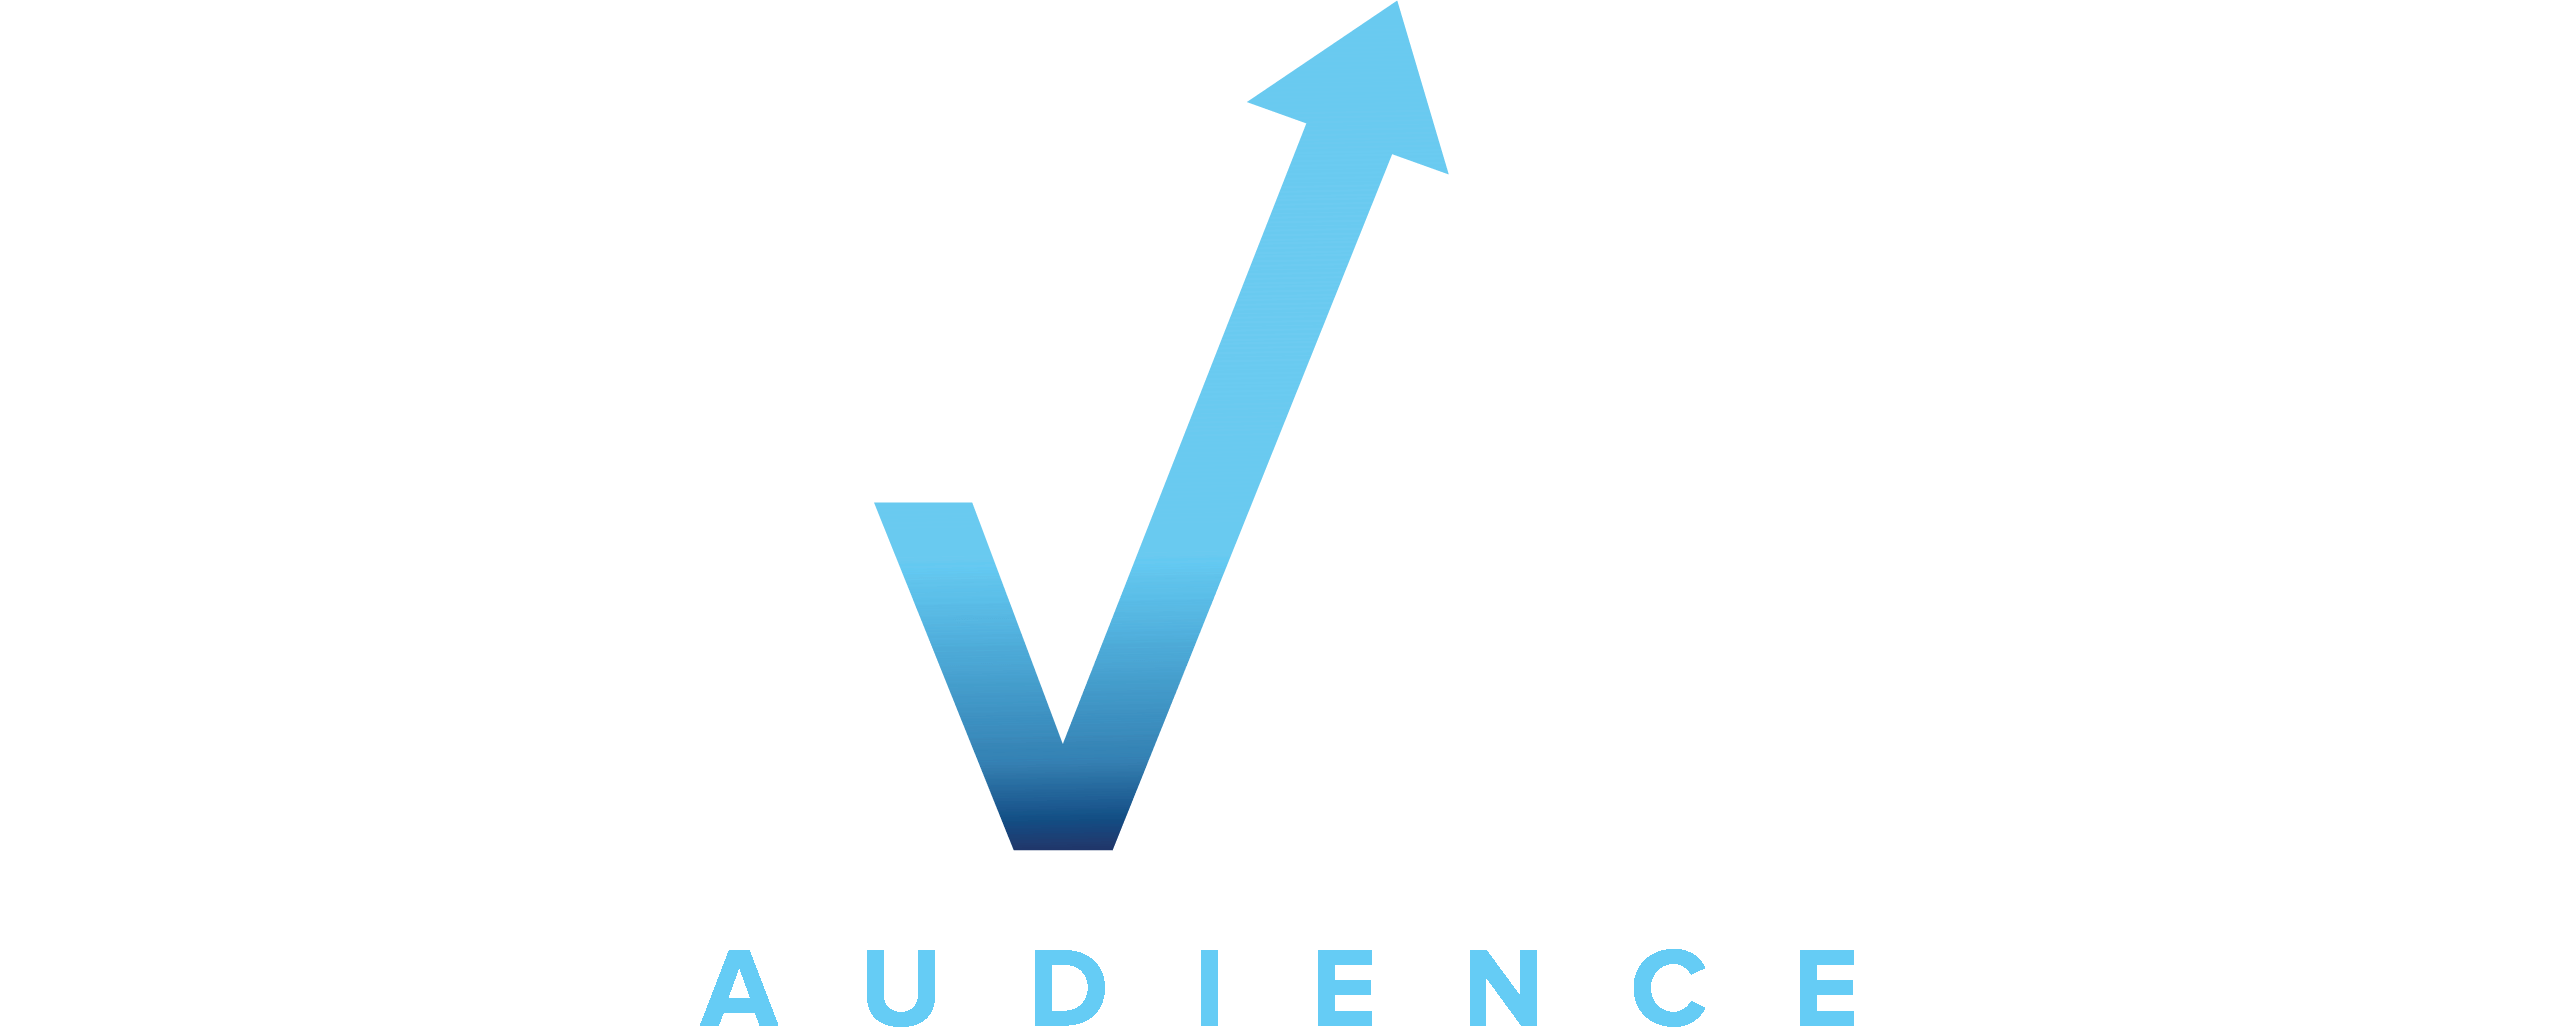 ELEVATED AUDIENCE - Navy_White